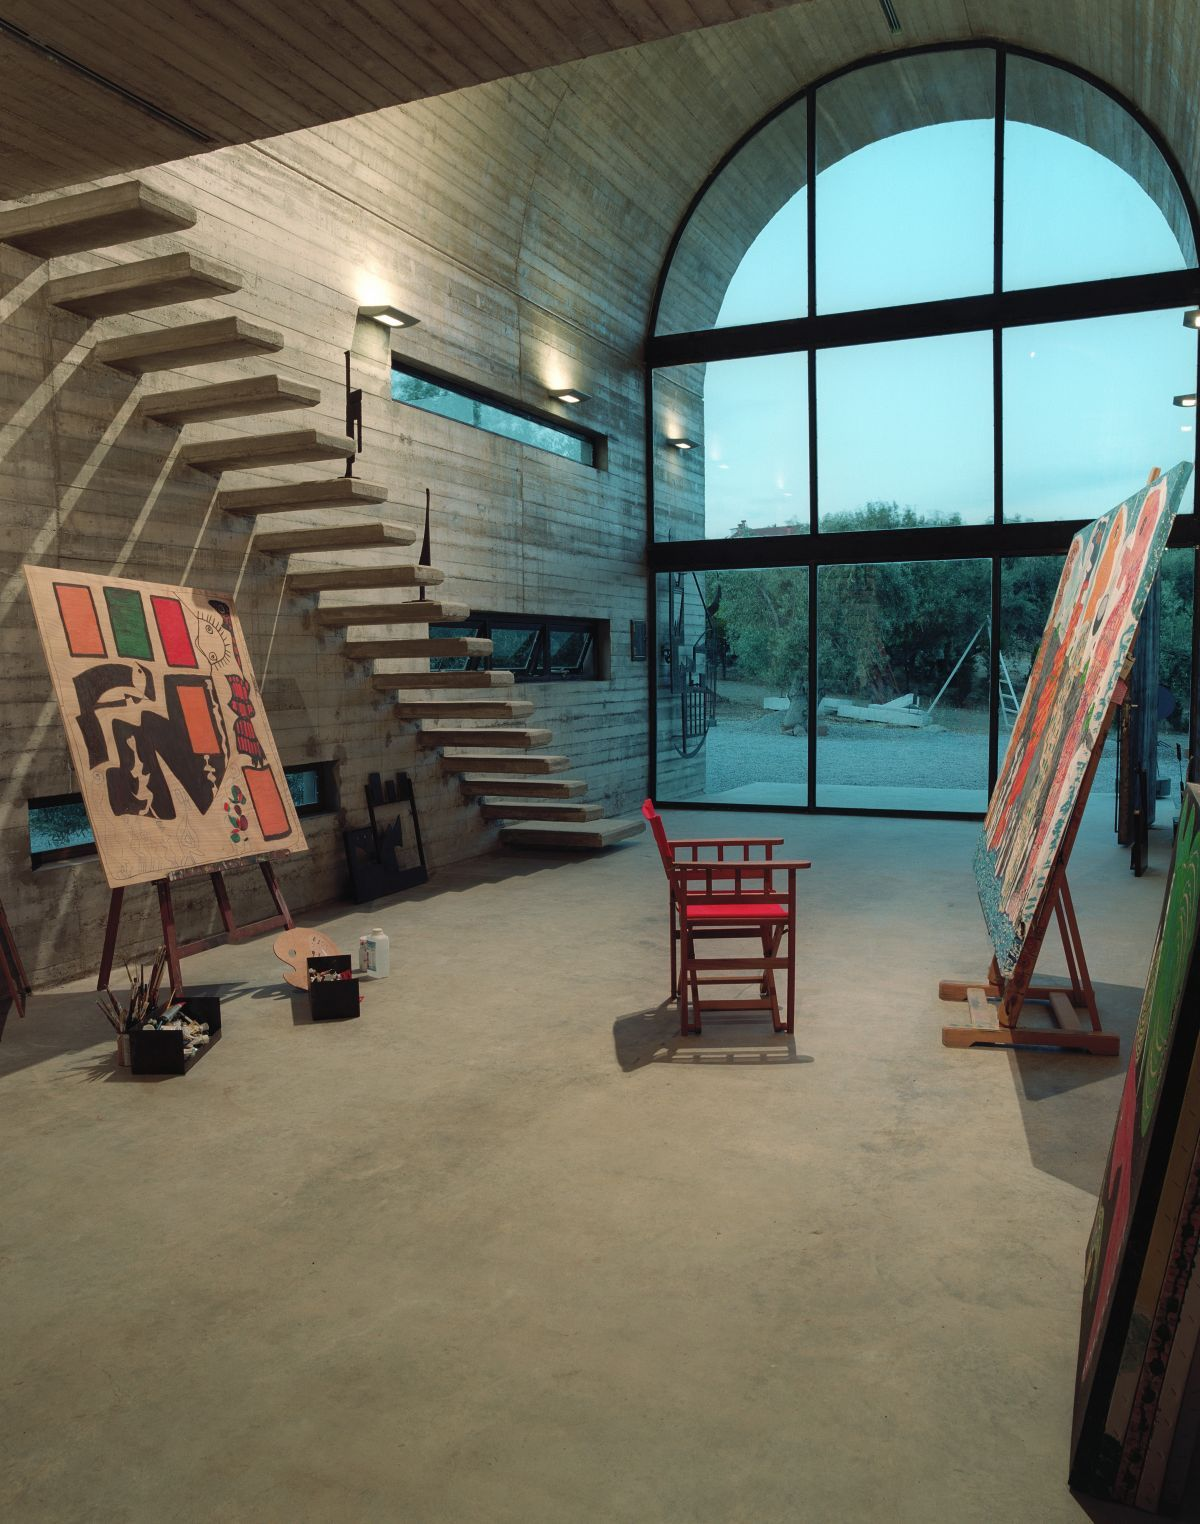 The Innovative Studio Architecture, Share With Us Their Work On The  Residential Design Of Art Warehouse In Greece. Design